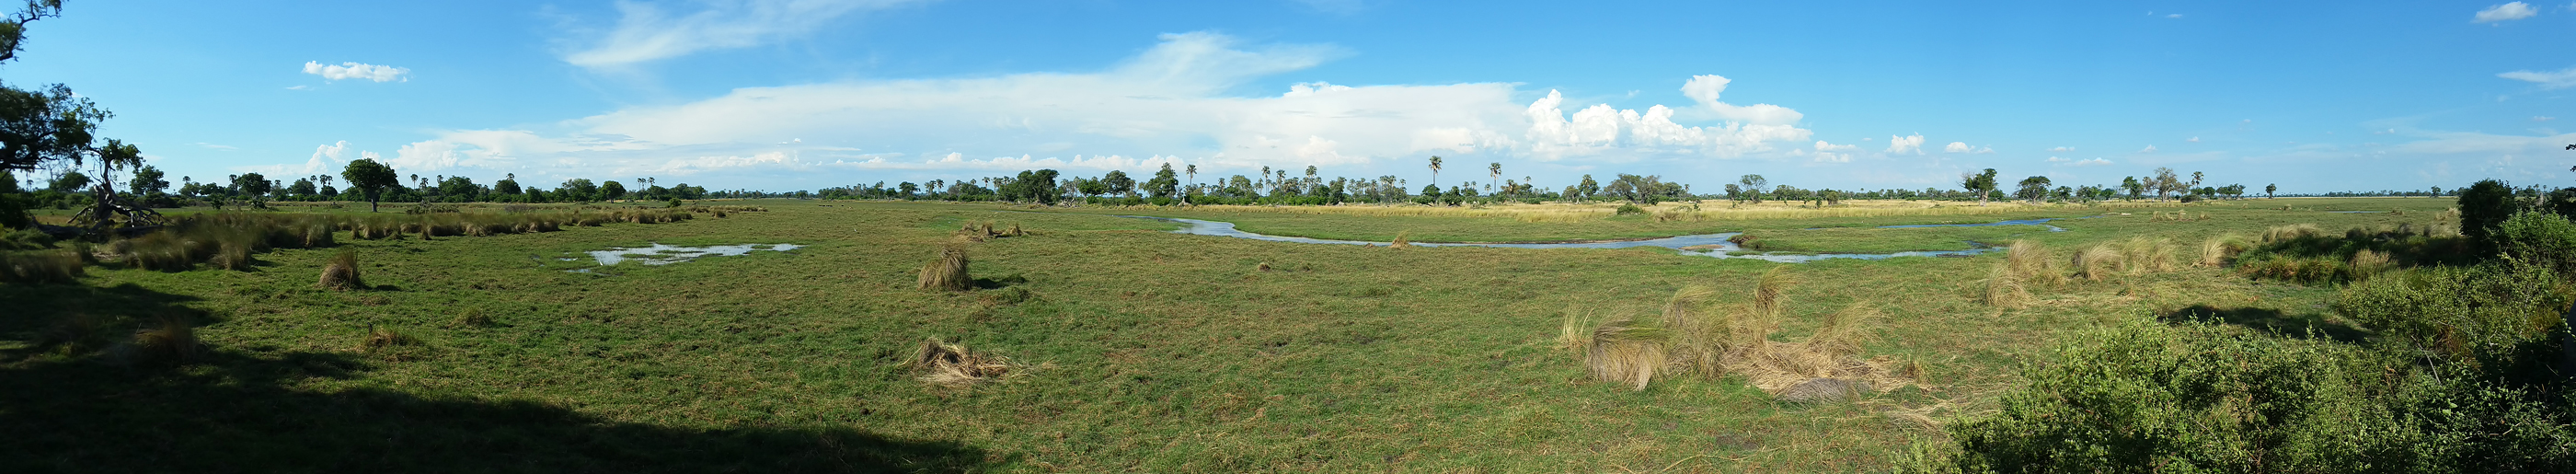 Flood plain in front of Delta Camp, Okavango Delta, panorama